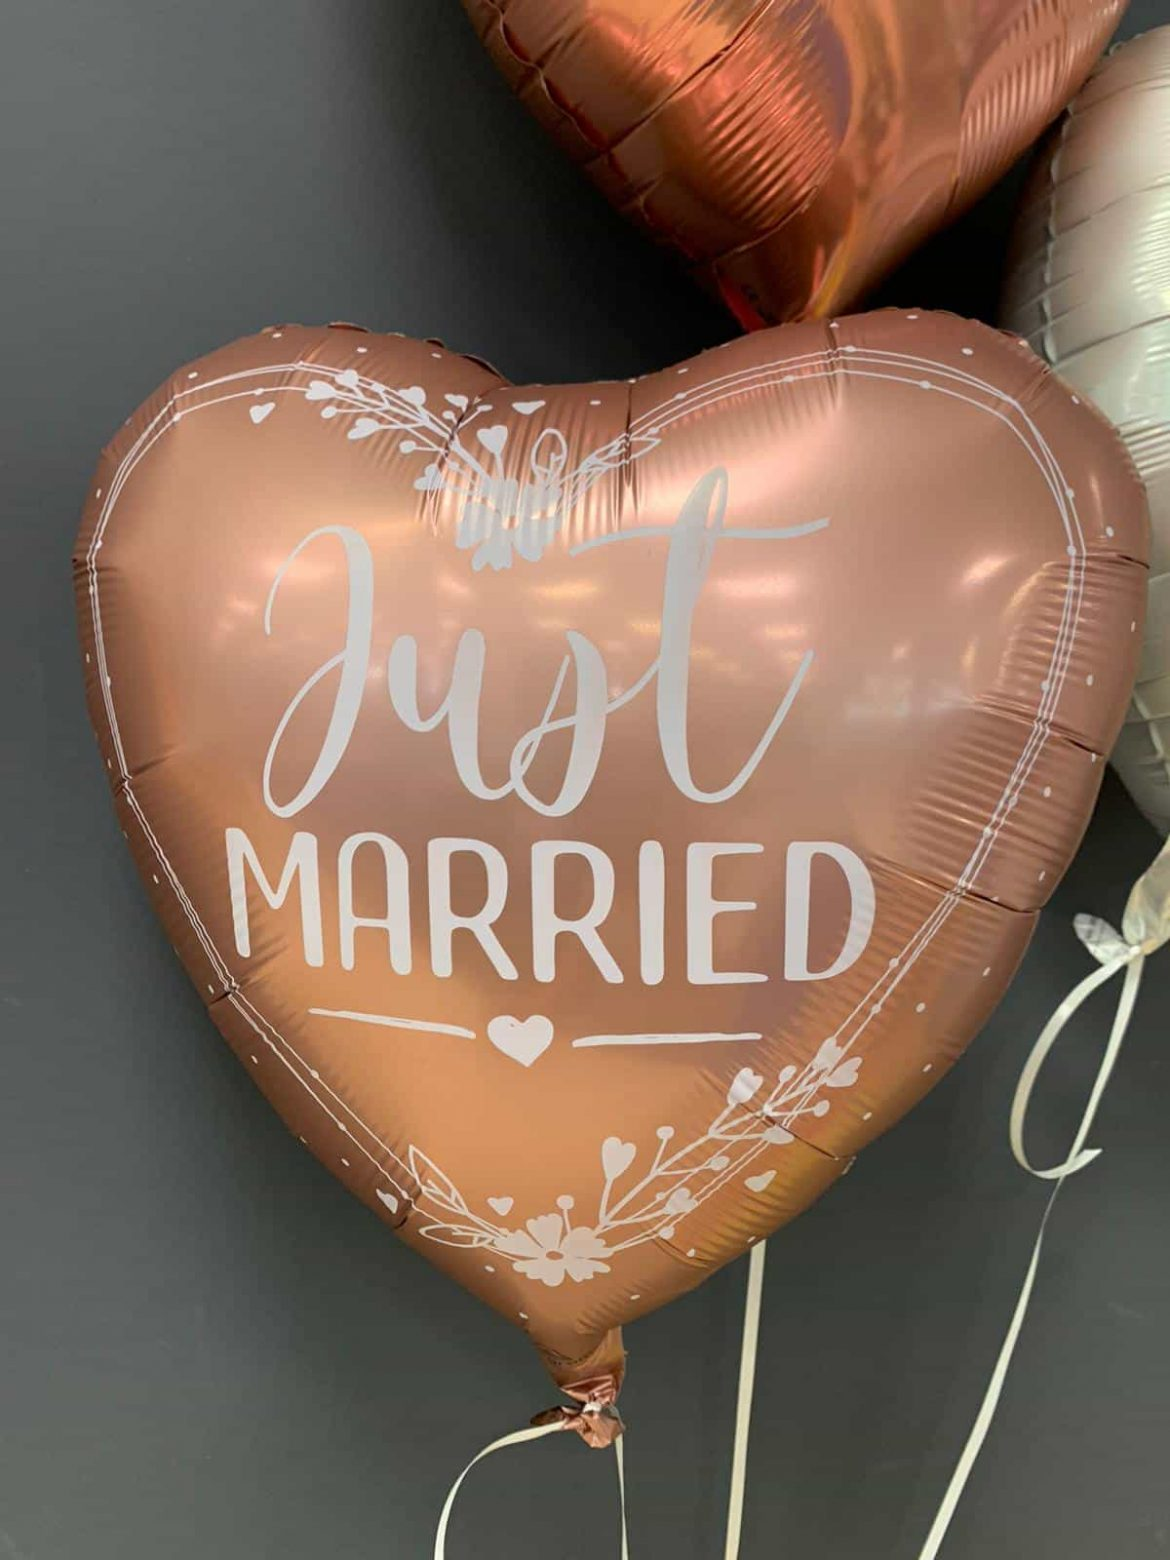 Just Married €5,90 1